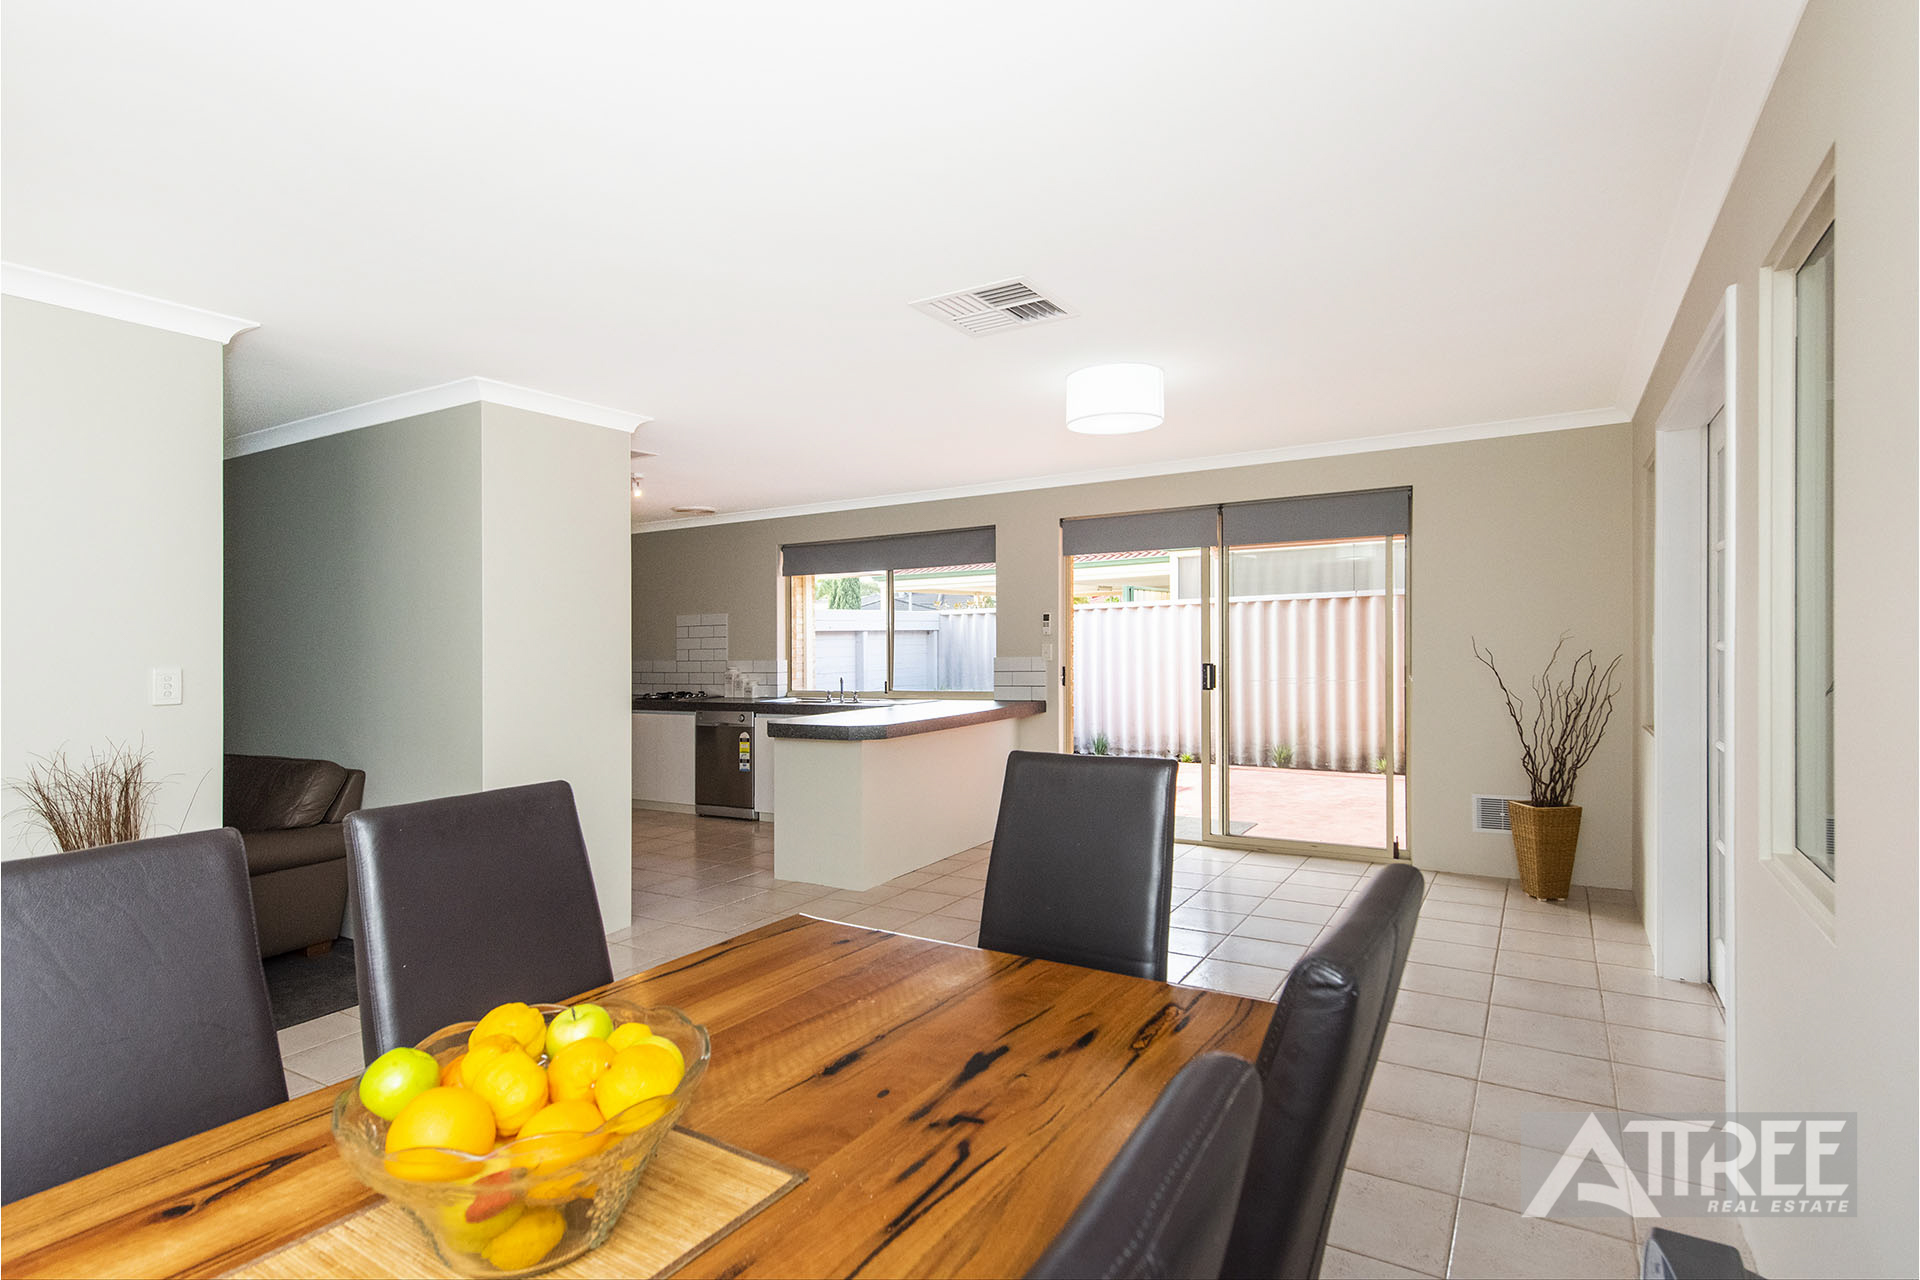 Property for sale in THORNLIE, 13 Tritonia Rise : Attree Real Estate